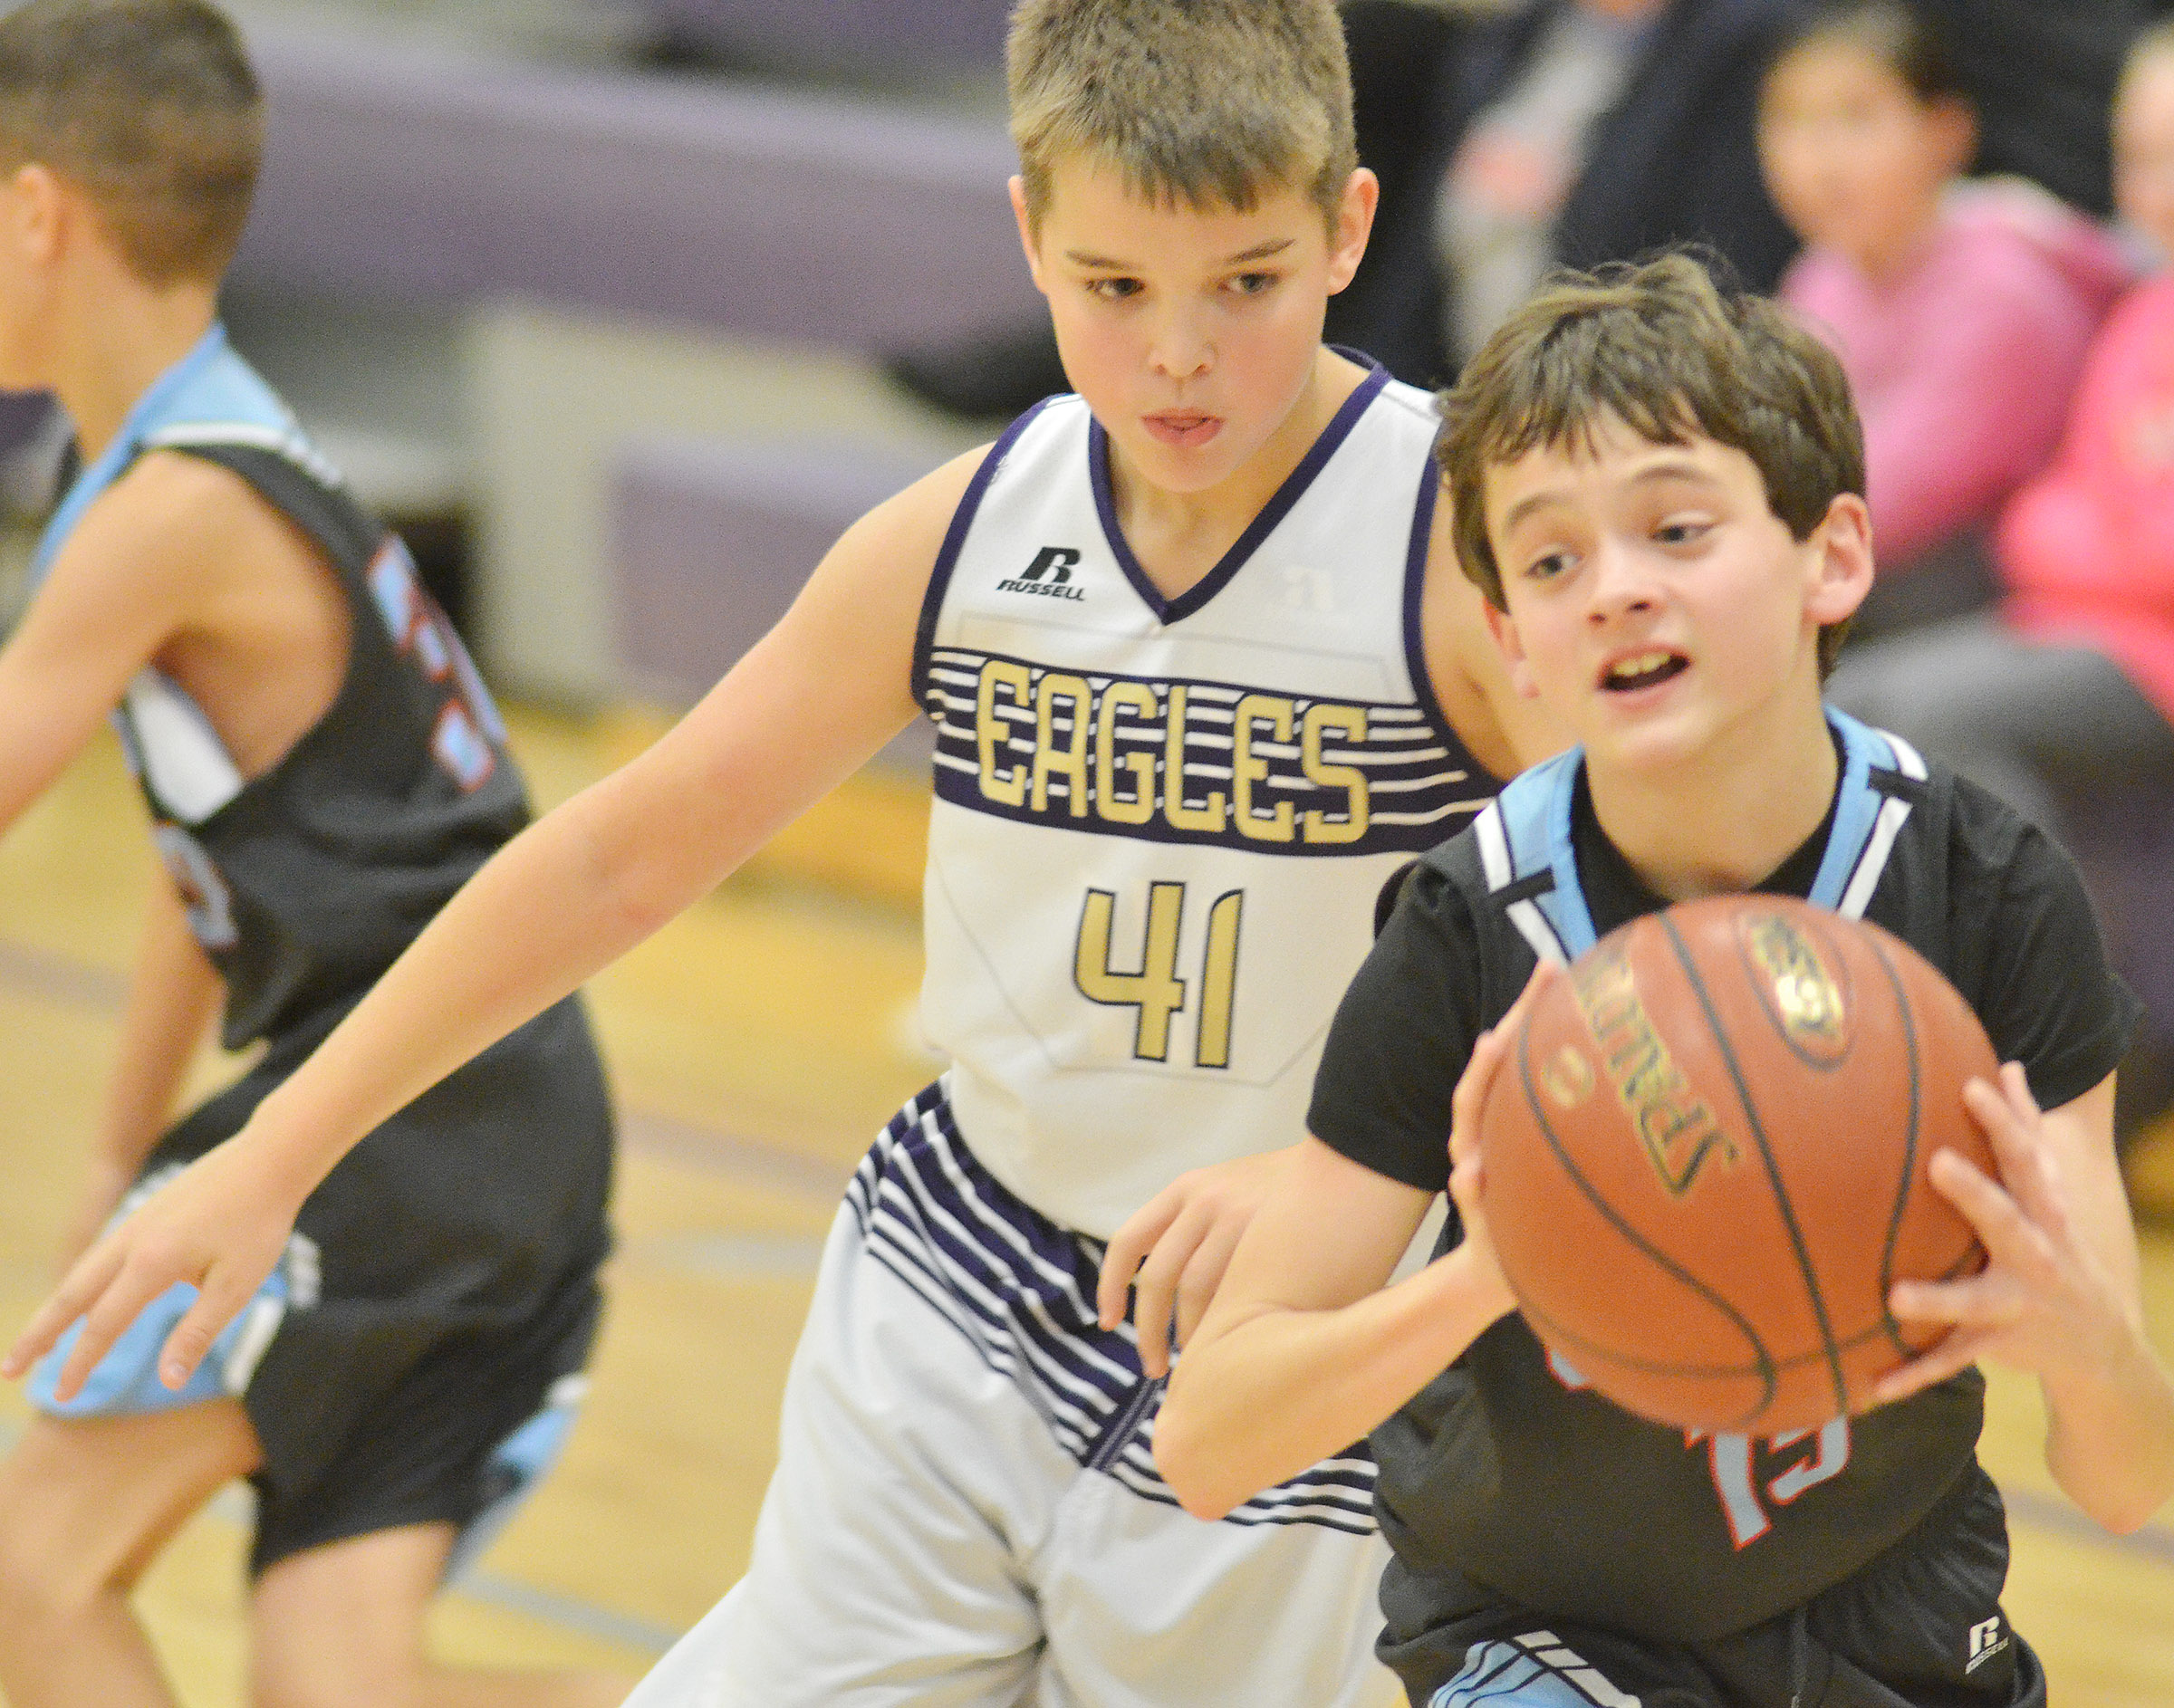 CMS sixth-grader Kaden Bloyd plays defense.